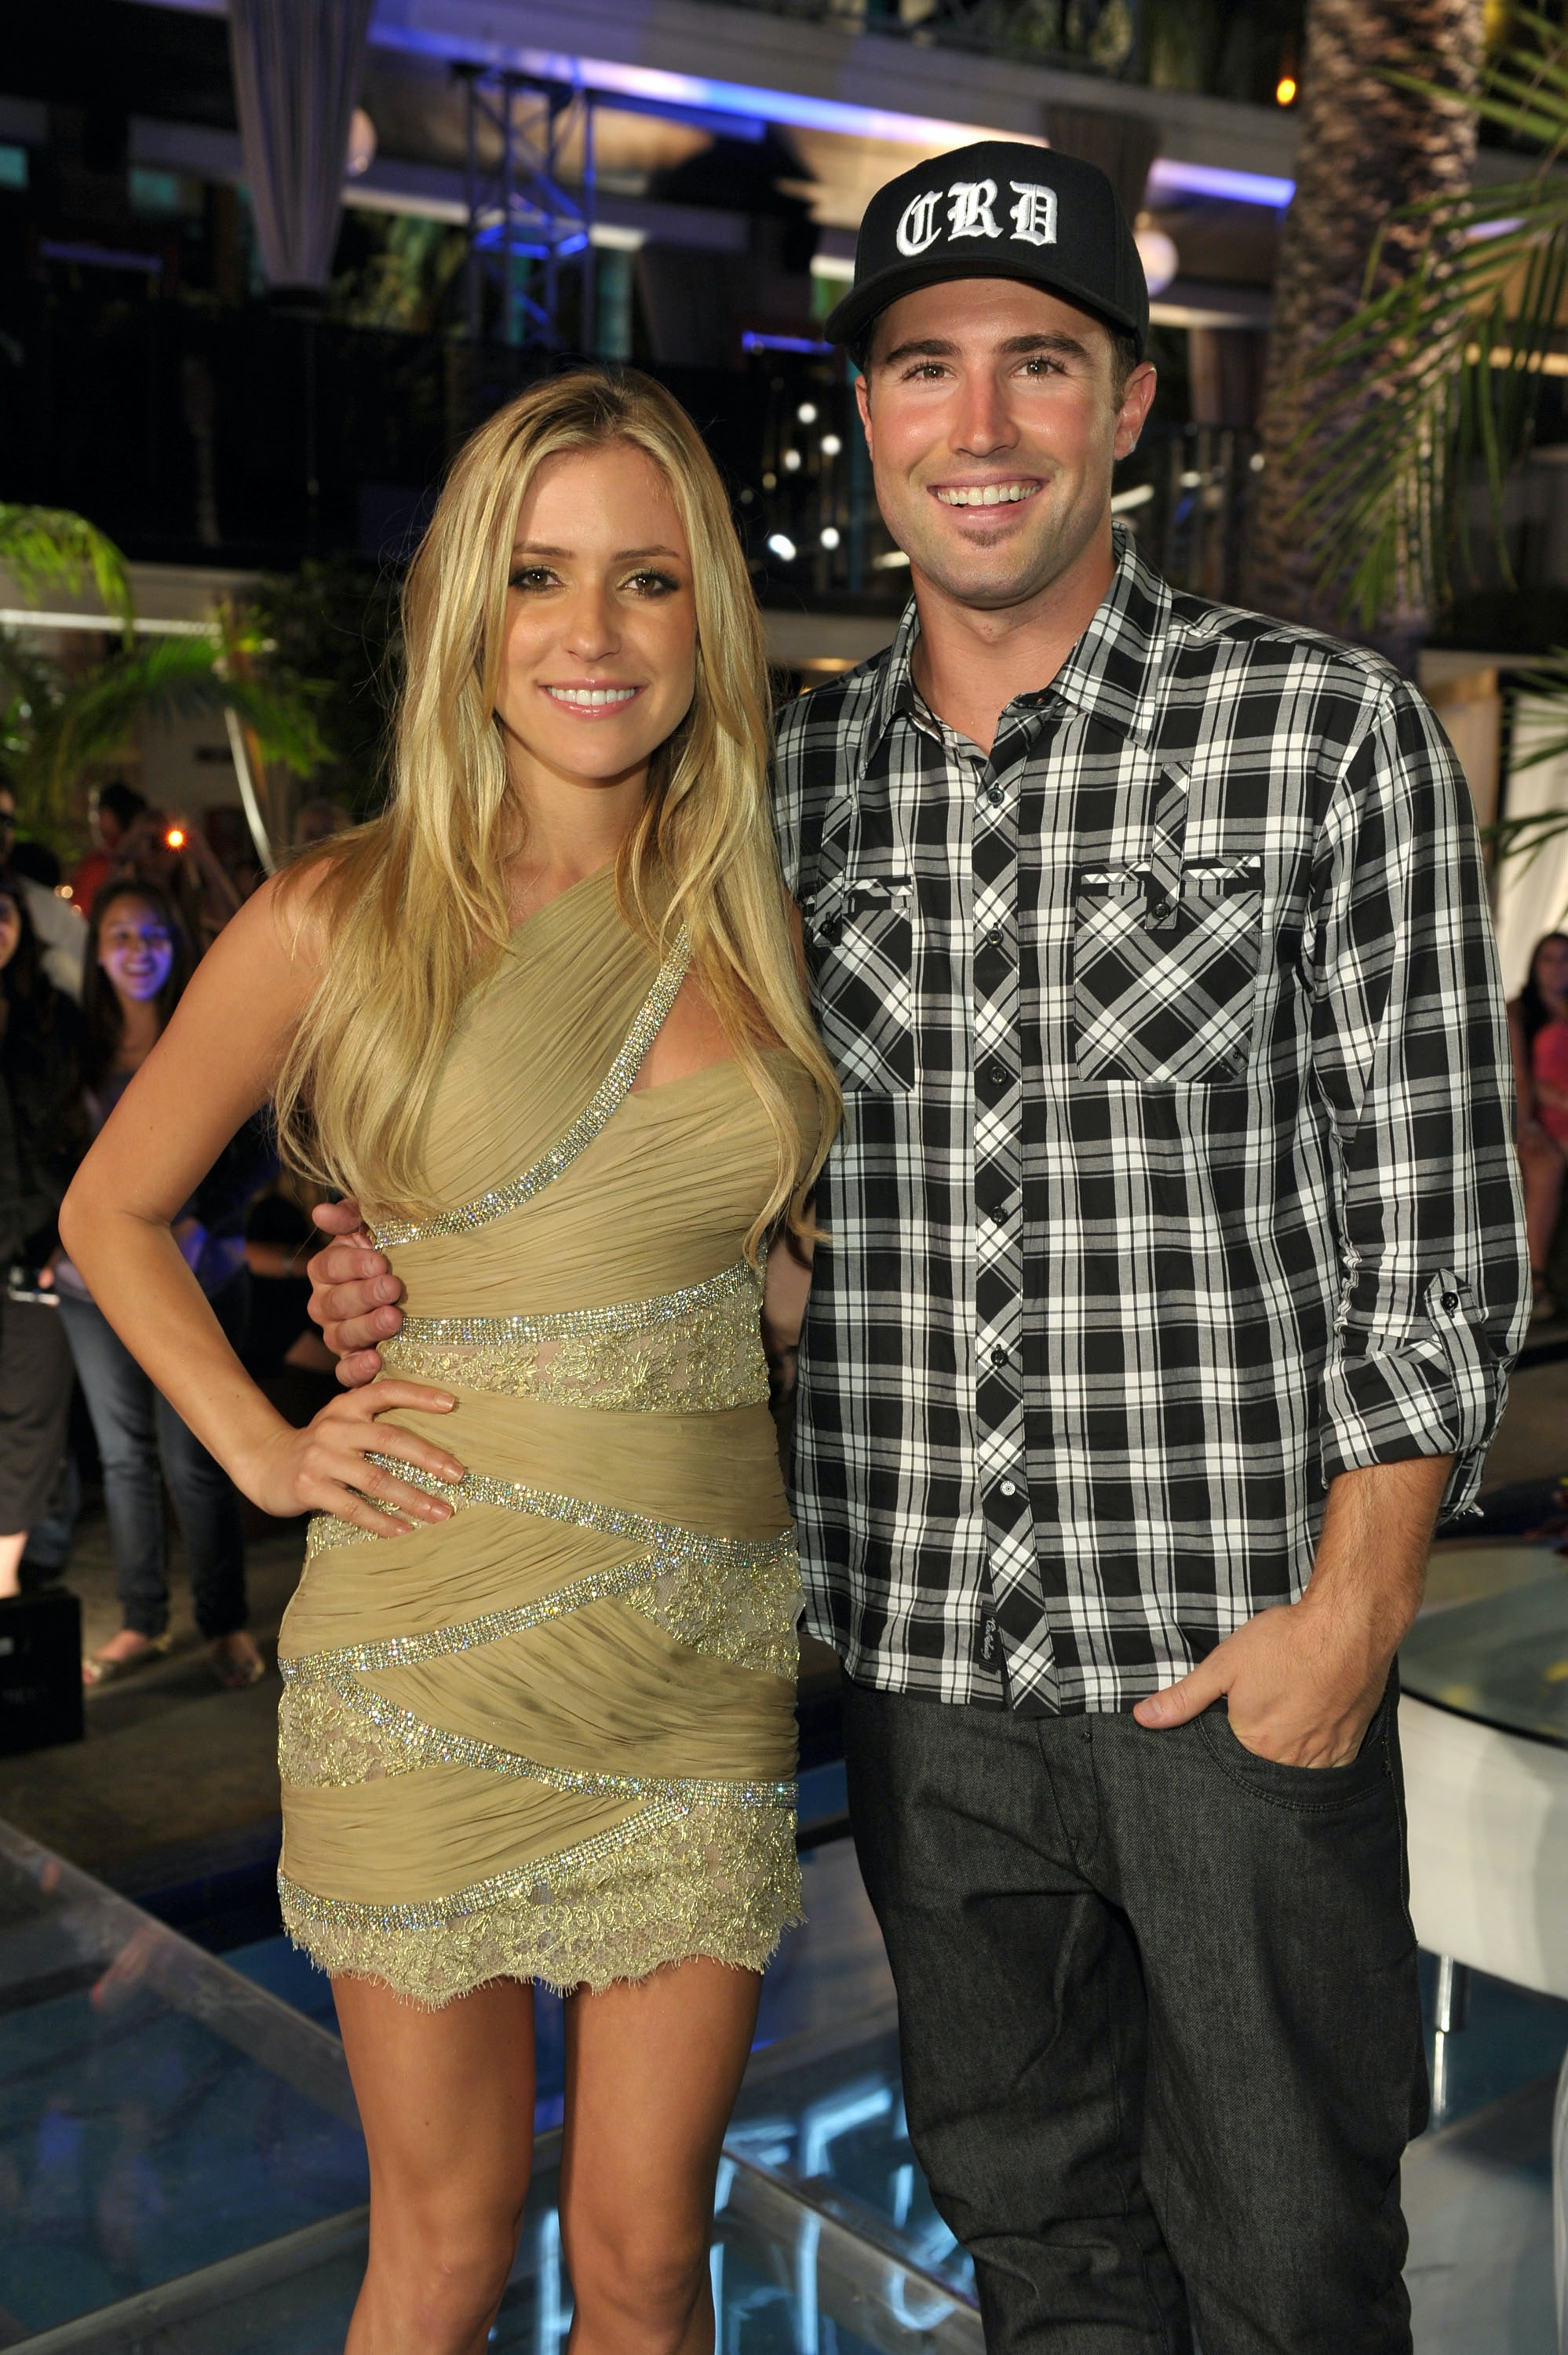 Who is brody from the hills dating 2019